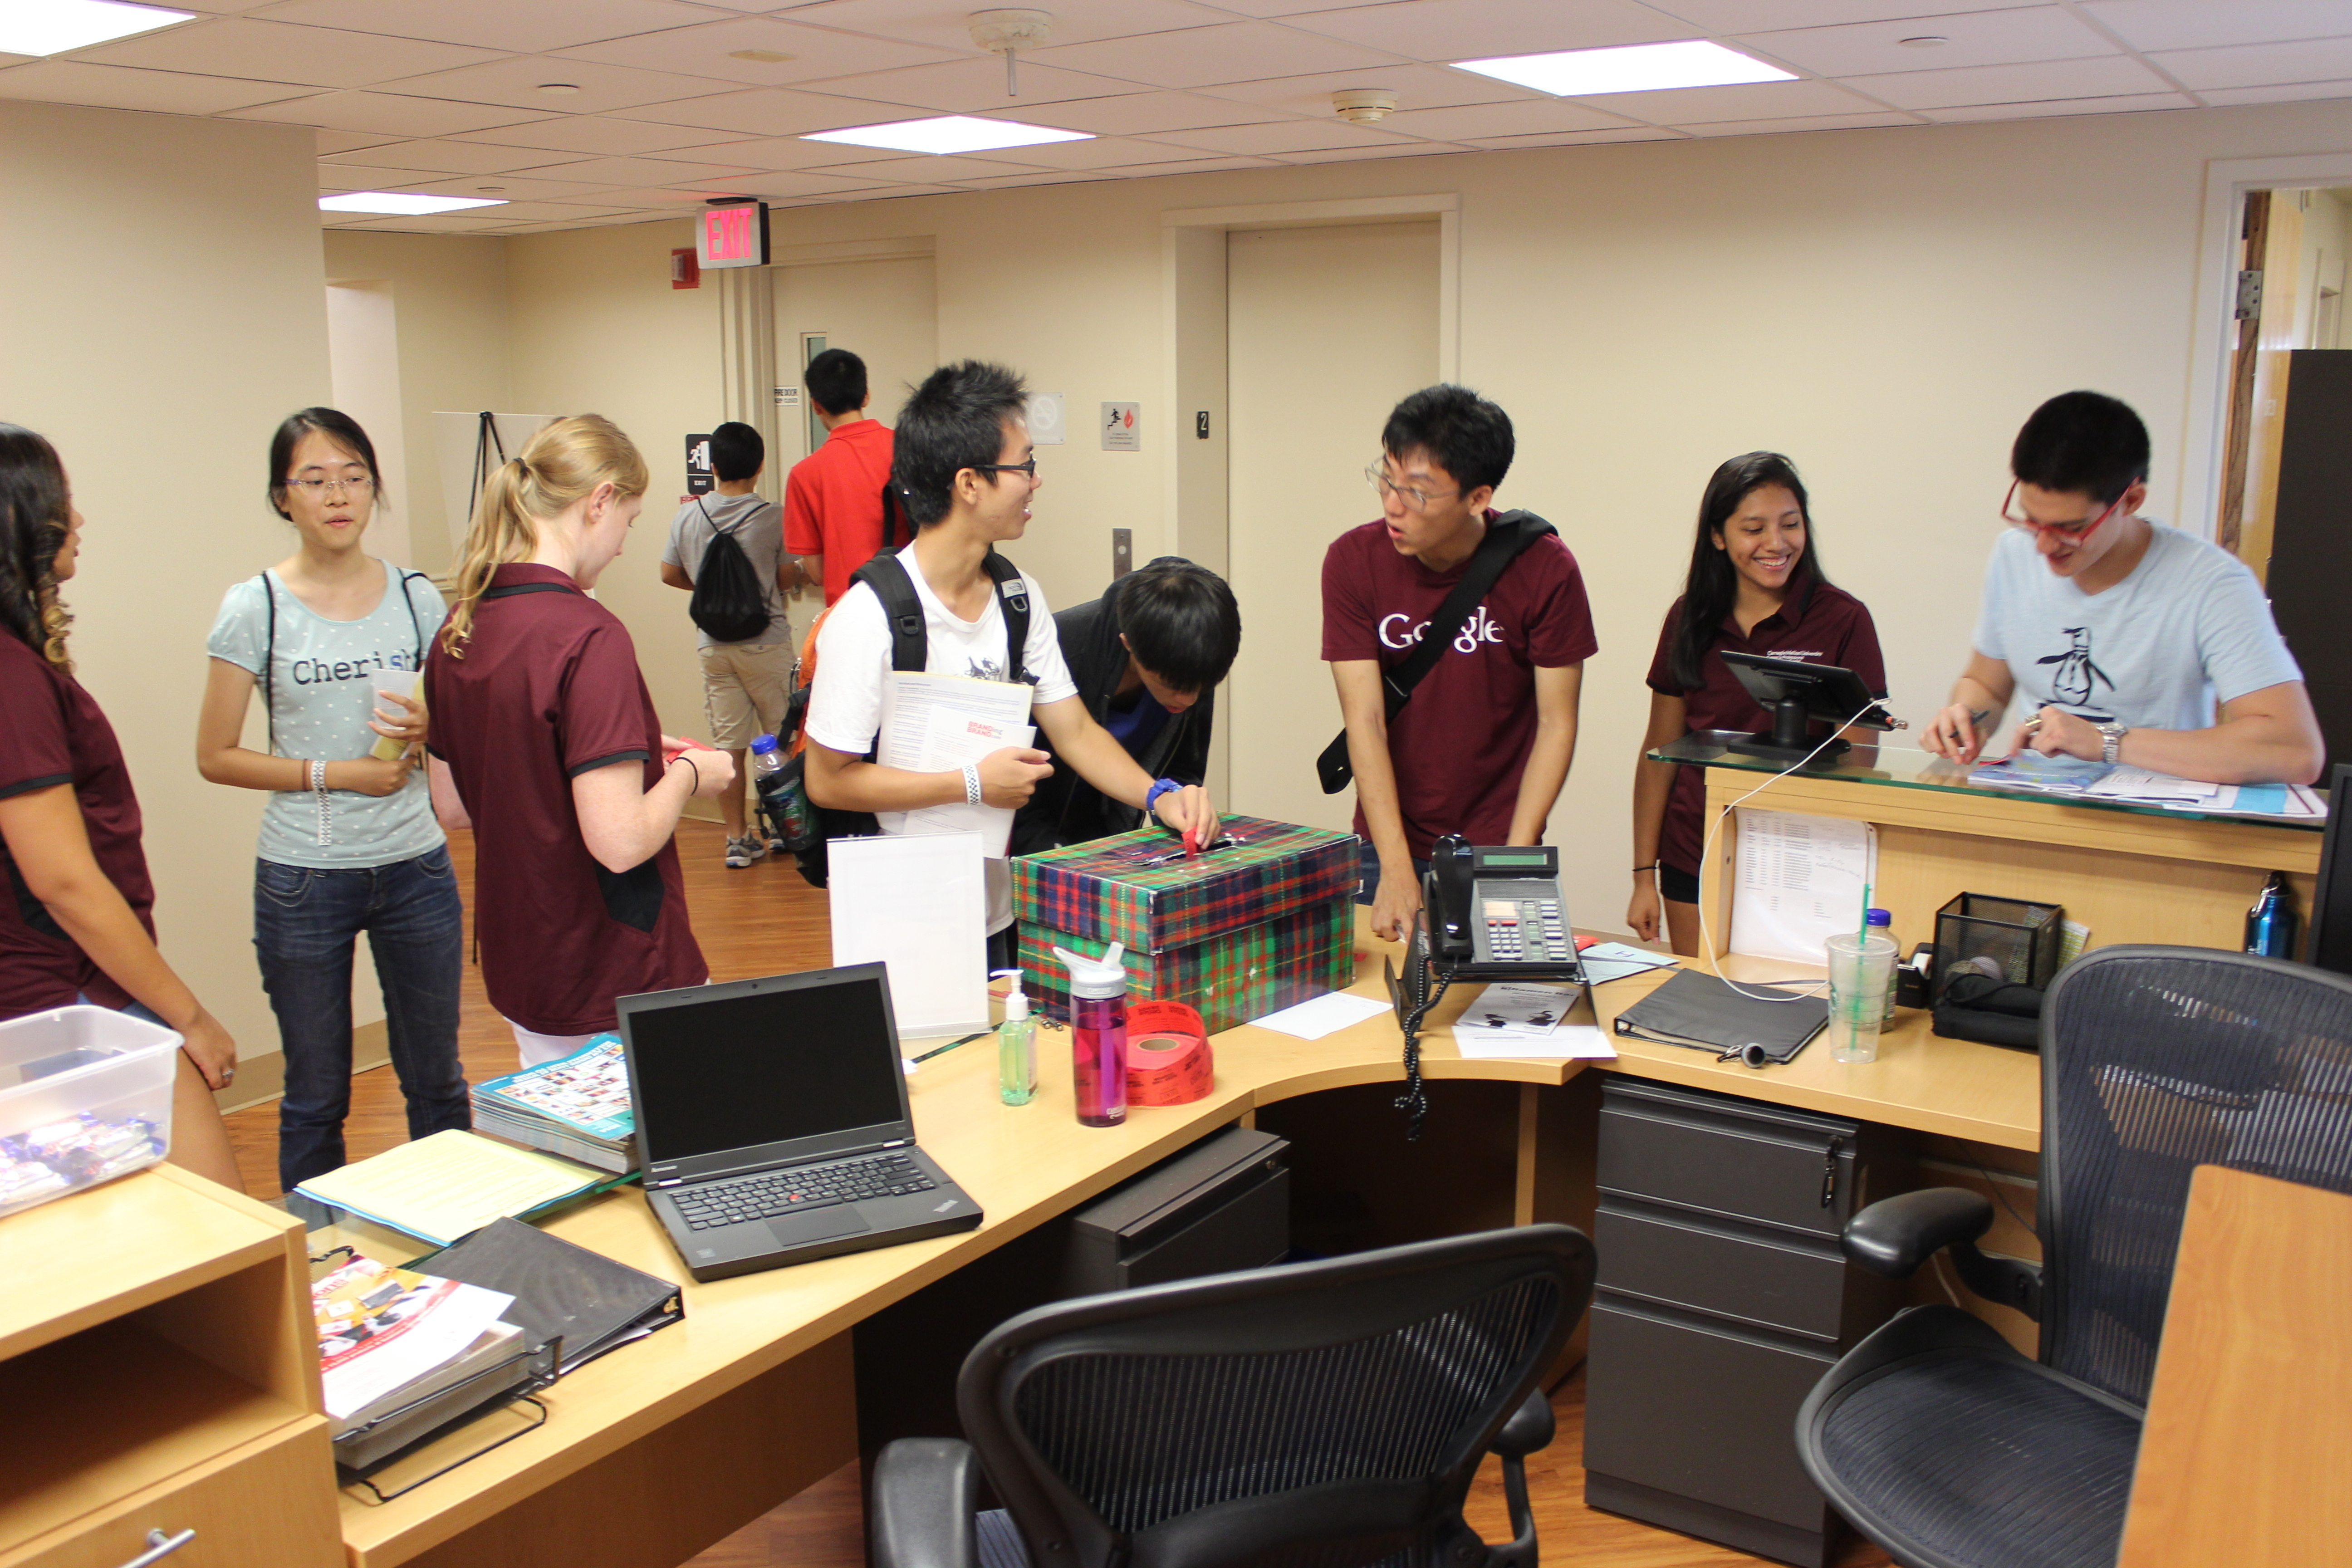 First-year students tour the Career and Professional Development Center's new location on the second floor of West Wing. (credit: Courtesy of Kevin O'Connell of the Career and Professional Development Center)